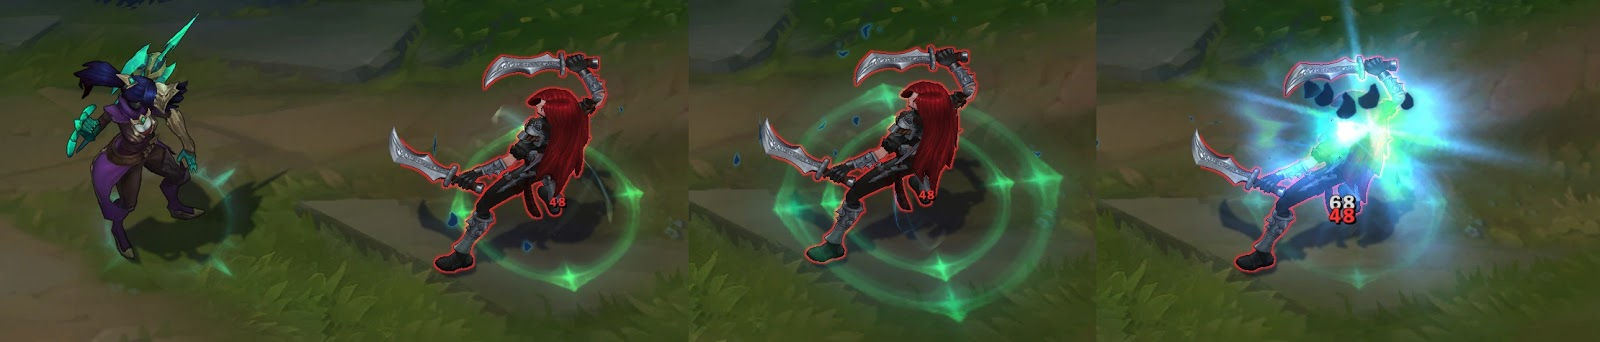 160616 08;08;36 Surrender at 20_ 6_14 PBE Update_ Soulstealer 008